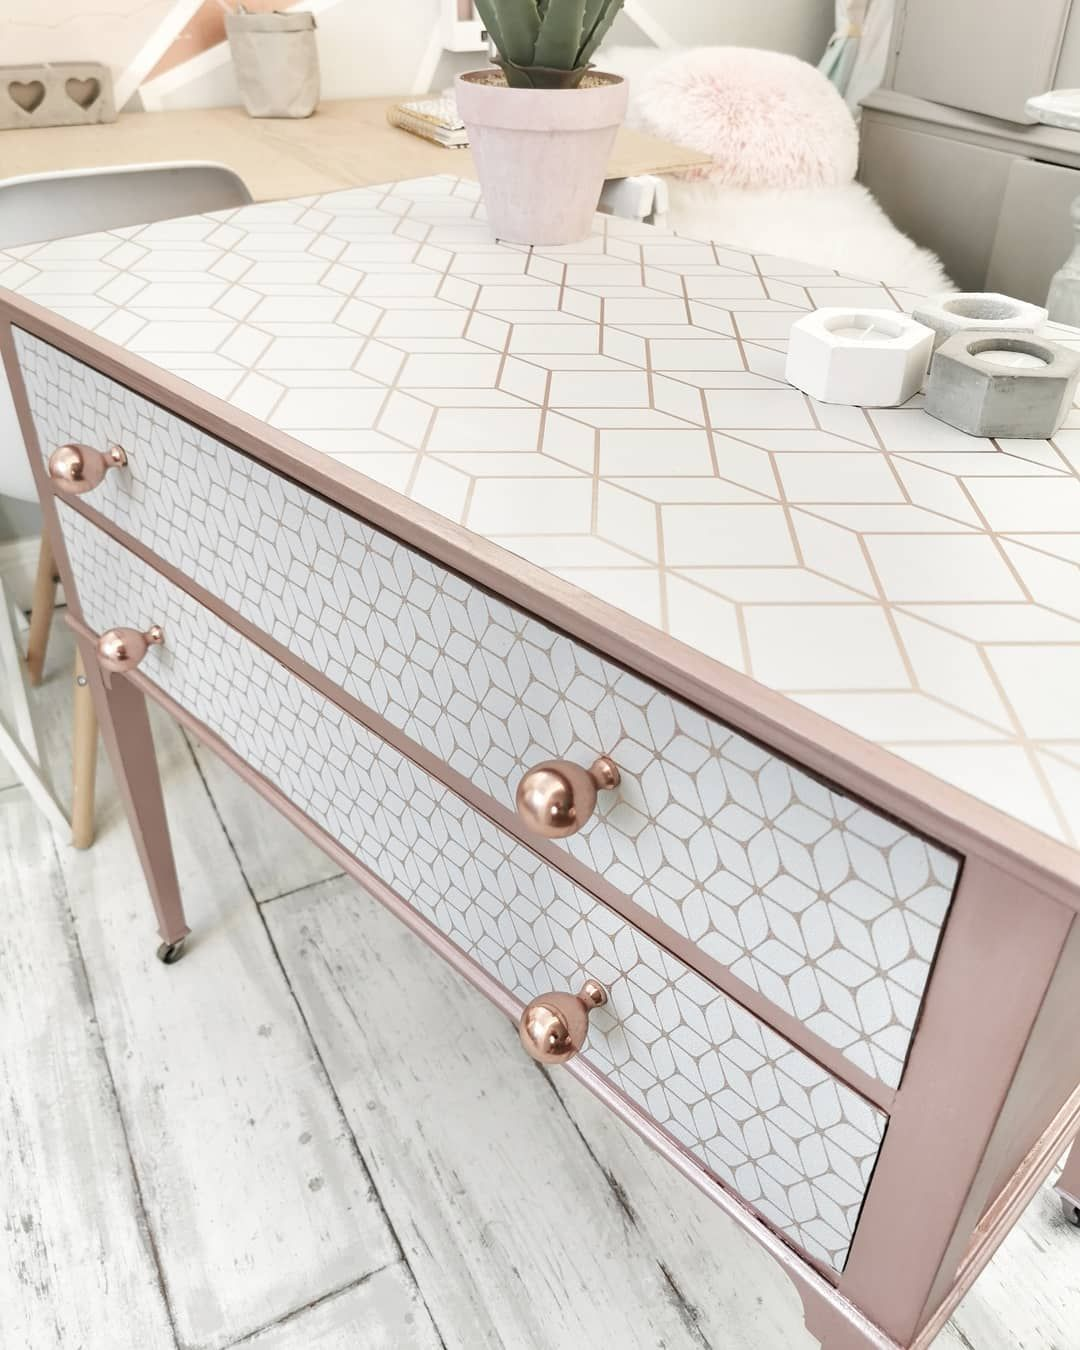 Chest Of Drawers Painted In Rose Gold Paint Decoupaged With Geometric Wallpaper Rose Gold Furniture Gold Painted Furniture Geometric Furniture